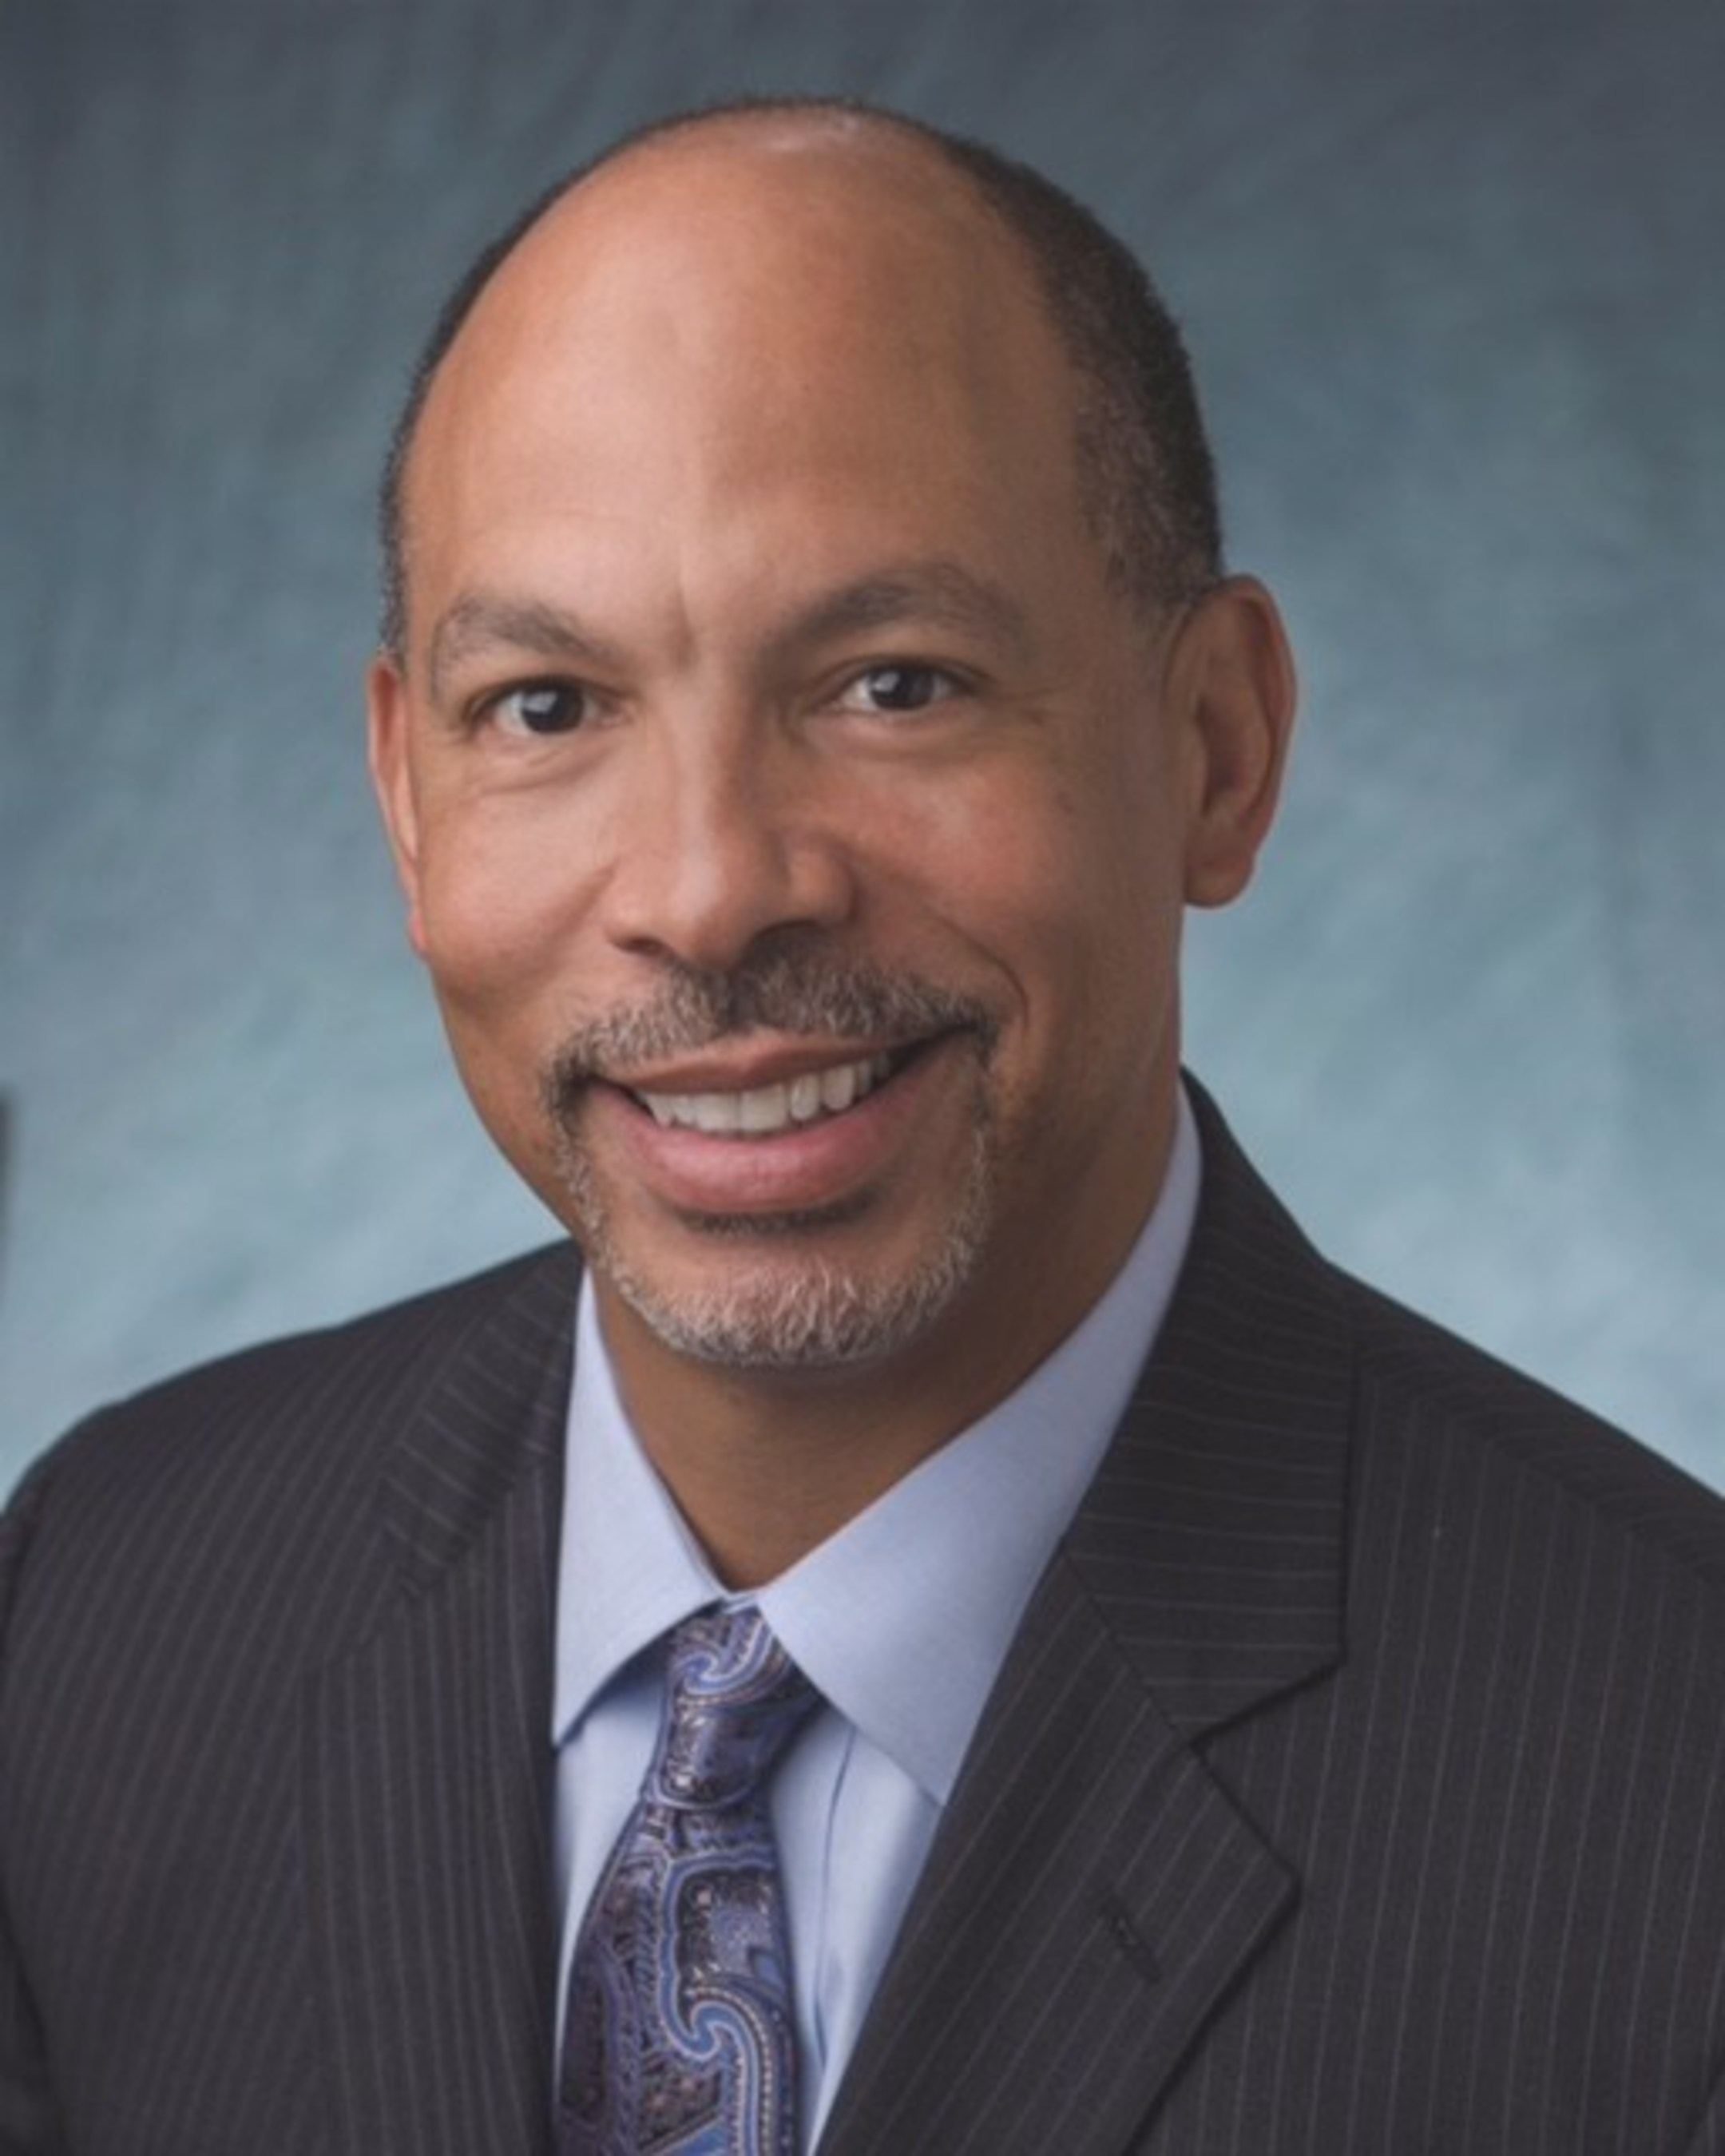 Eugene A. Woods was appointed as President & CEO of Carolinas HealthCare System by the system's board of commissioners. He succeeds Michael C. Tarwater, CEO since 2002. Tarwater announced his retirement in June 2015 and will remain with Carolinas HealthCare System until June 30, 2106 to ensure a seamless transition. Woods is currently the President and CEO of CHRISTUS Health and was recently elected the next chairman of the American Hospital Association. He will assume that role in 2017.